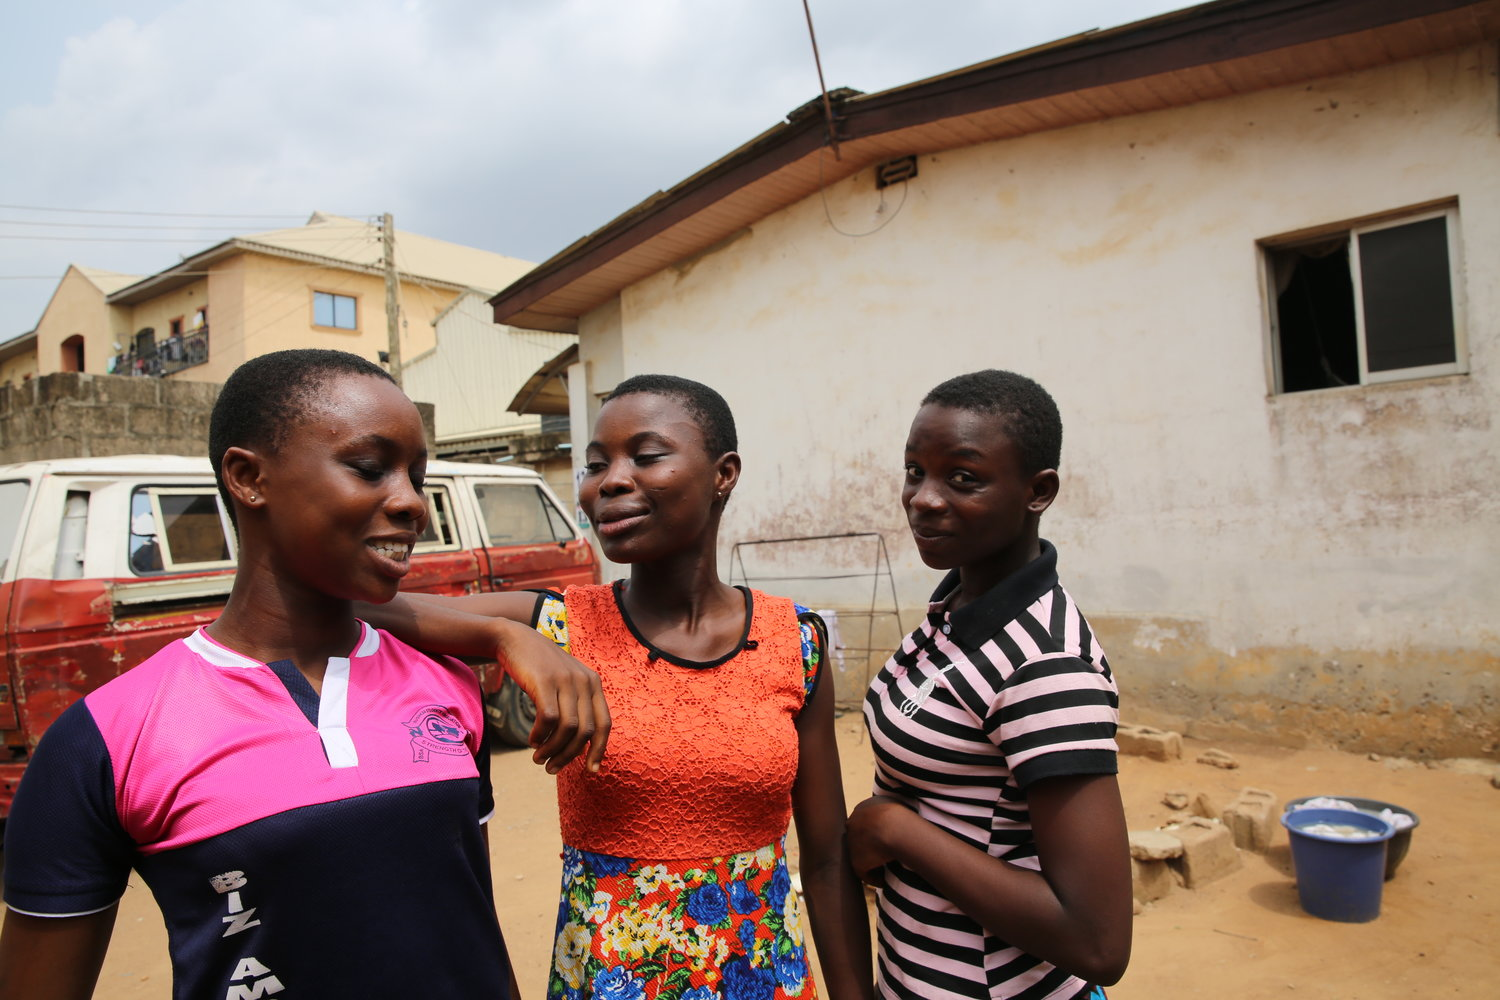 Girls across Nigeria face deep cultural and societal challenges in accessing contraceptives. A360's  9ja Girls programming works within the complexity of this system to meet girls, and their influencers, where they are and how they need.